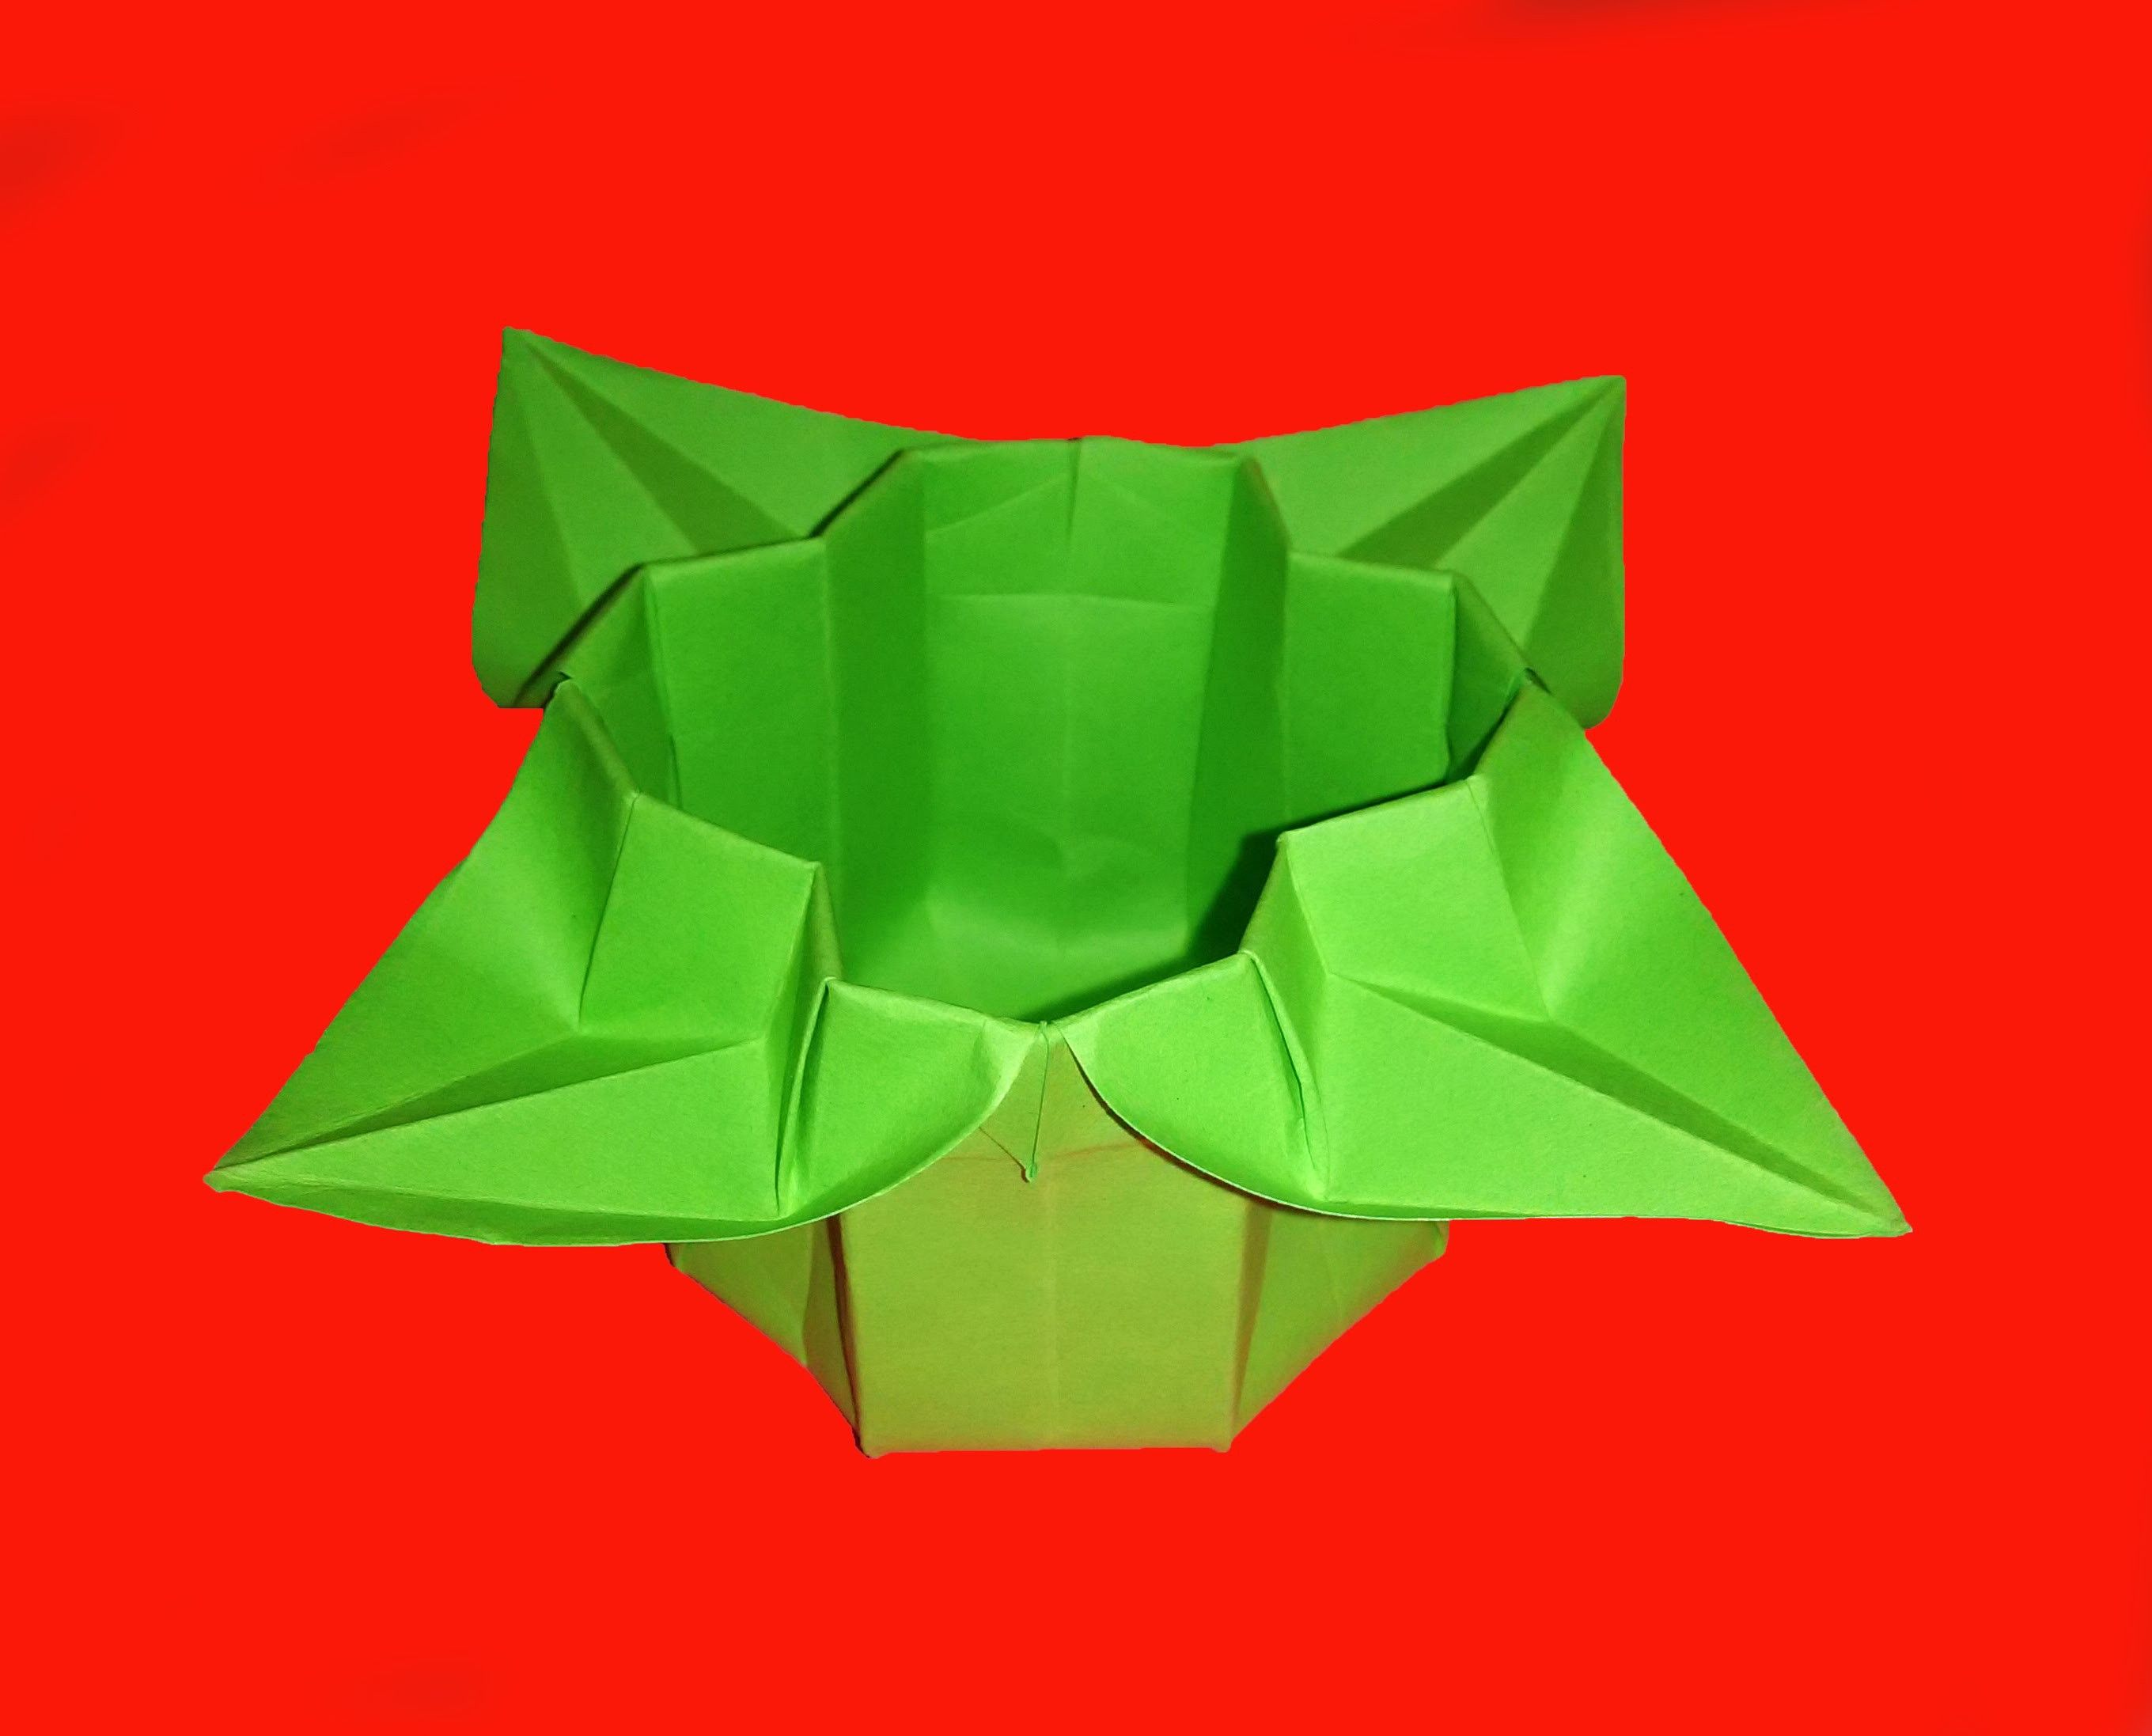 Basket For Sweets Easter Ideas Easy Origami Basket Cup Korzinka V Tehnike Origami Origami Easy Origami Origami Candle Holder